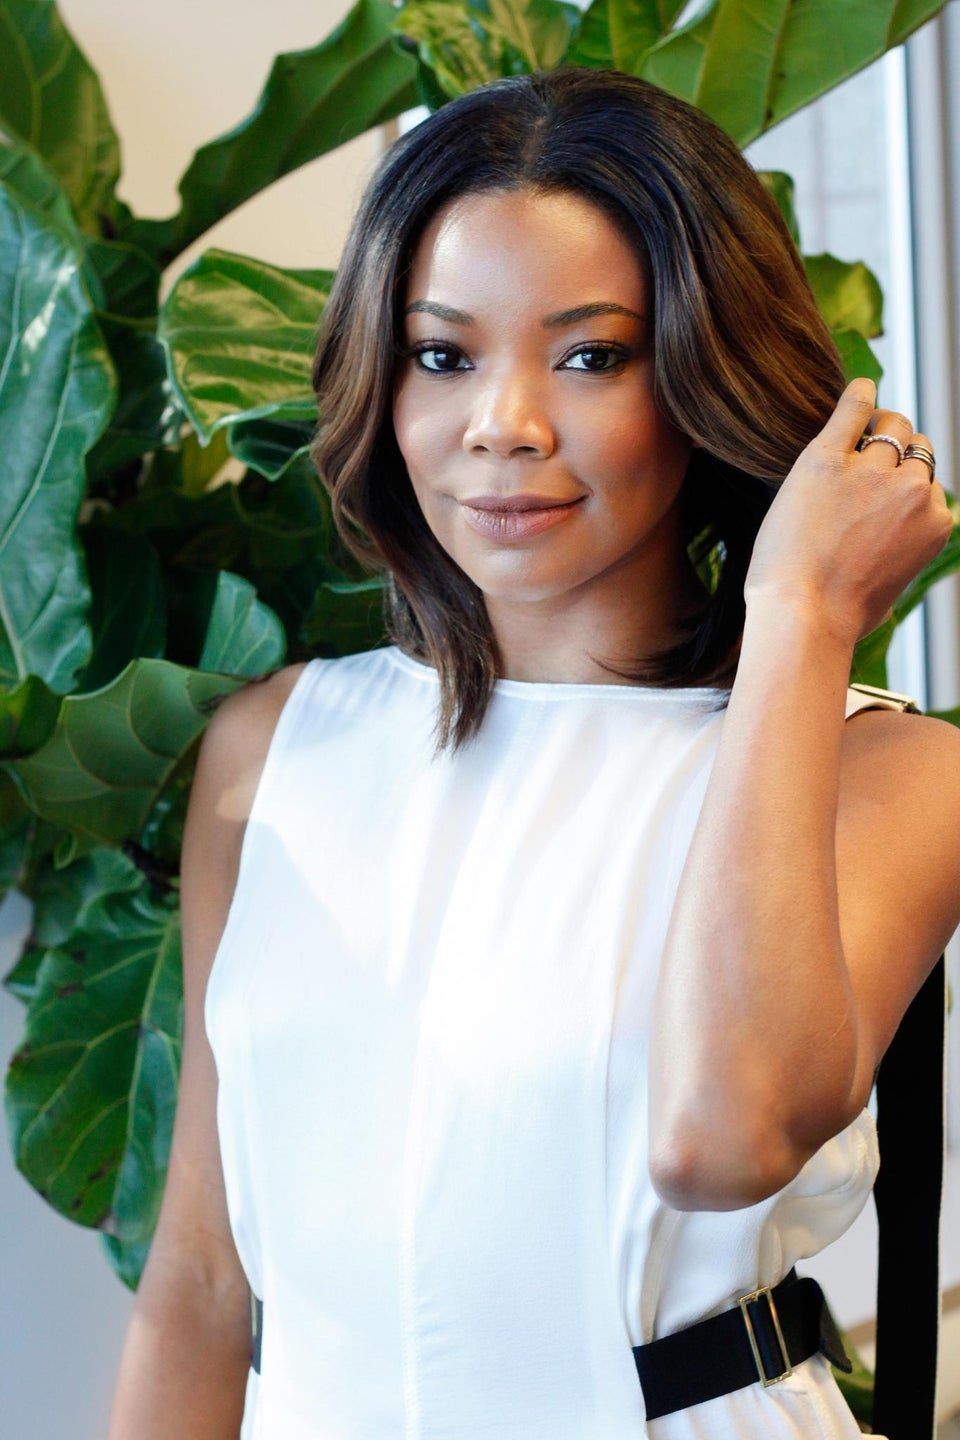 Gabrielle Union is Proud to Have Her Own Money: 'If I Want a Chanel Bag, I'm Not Asking for His Amex'